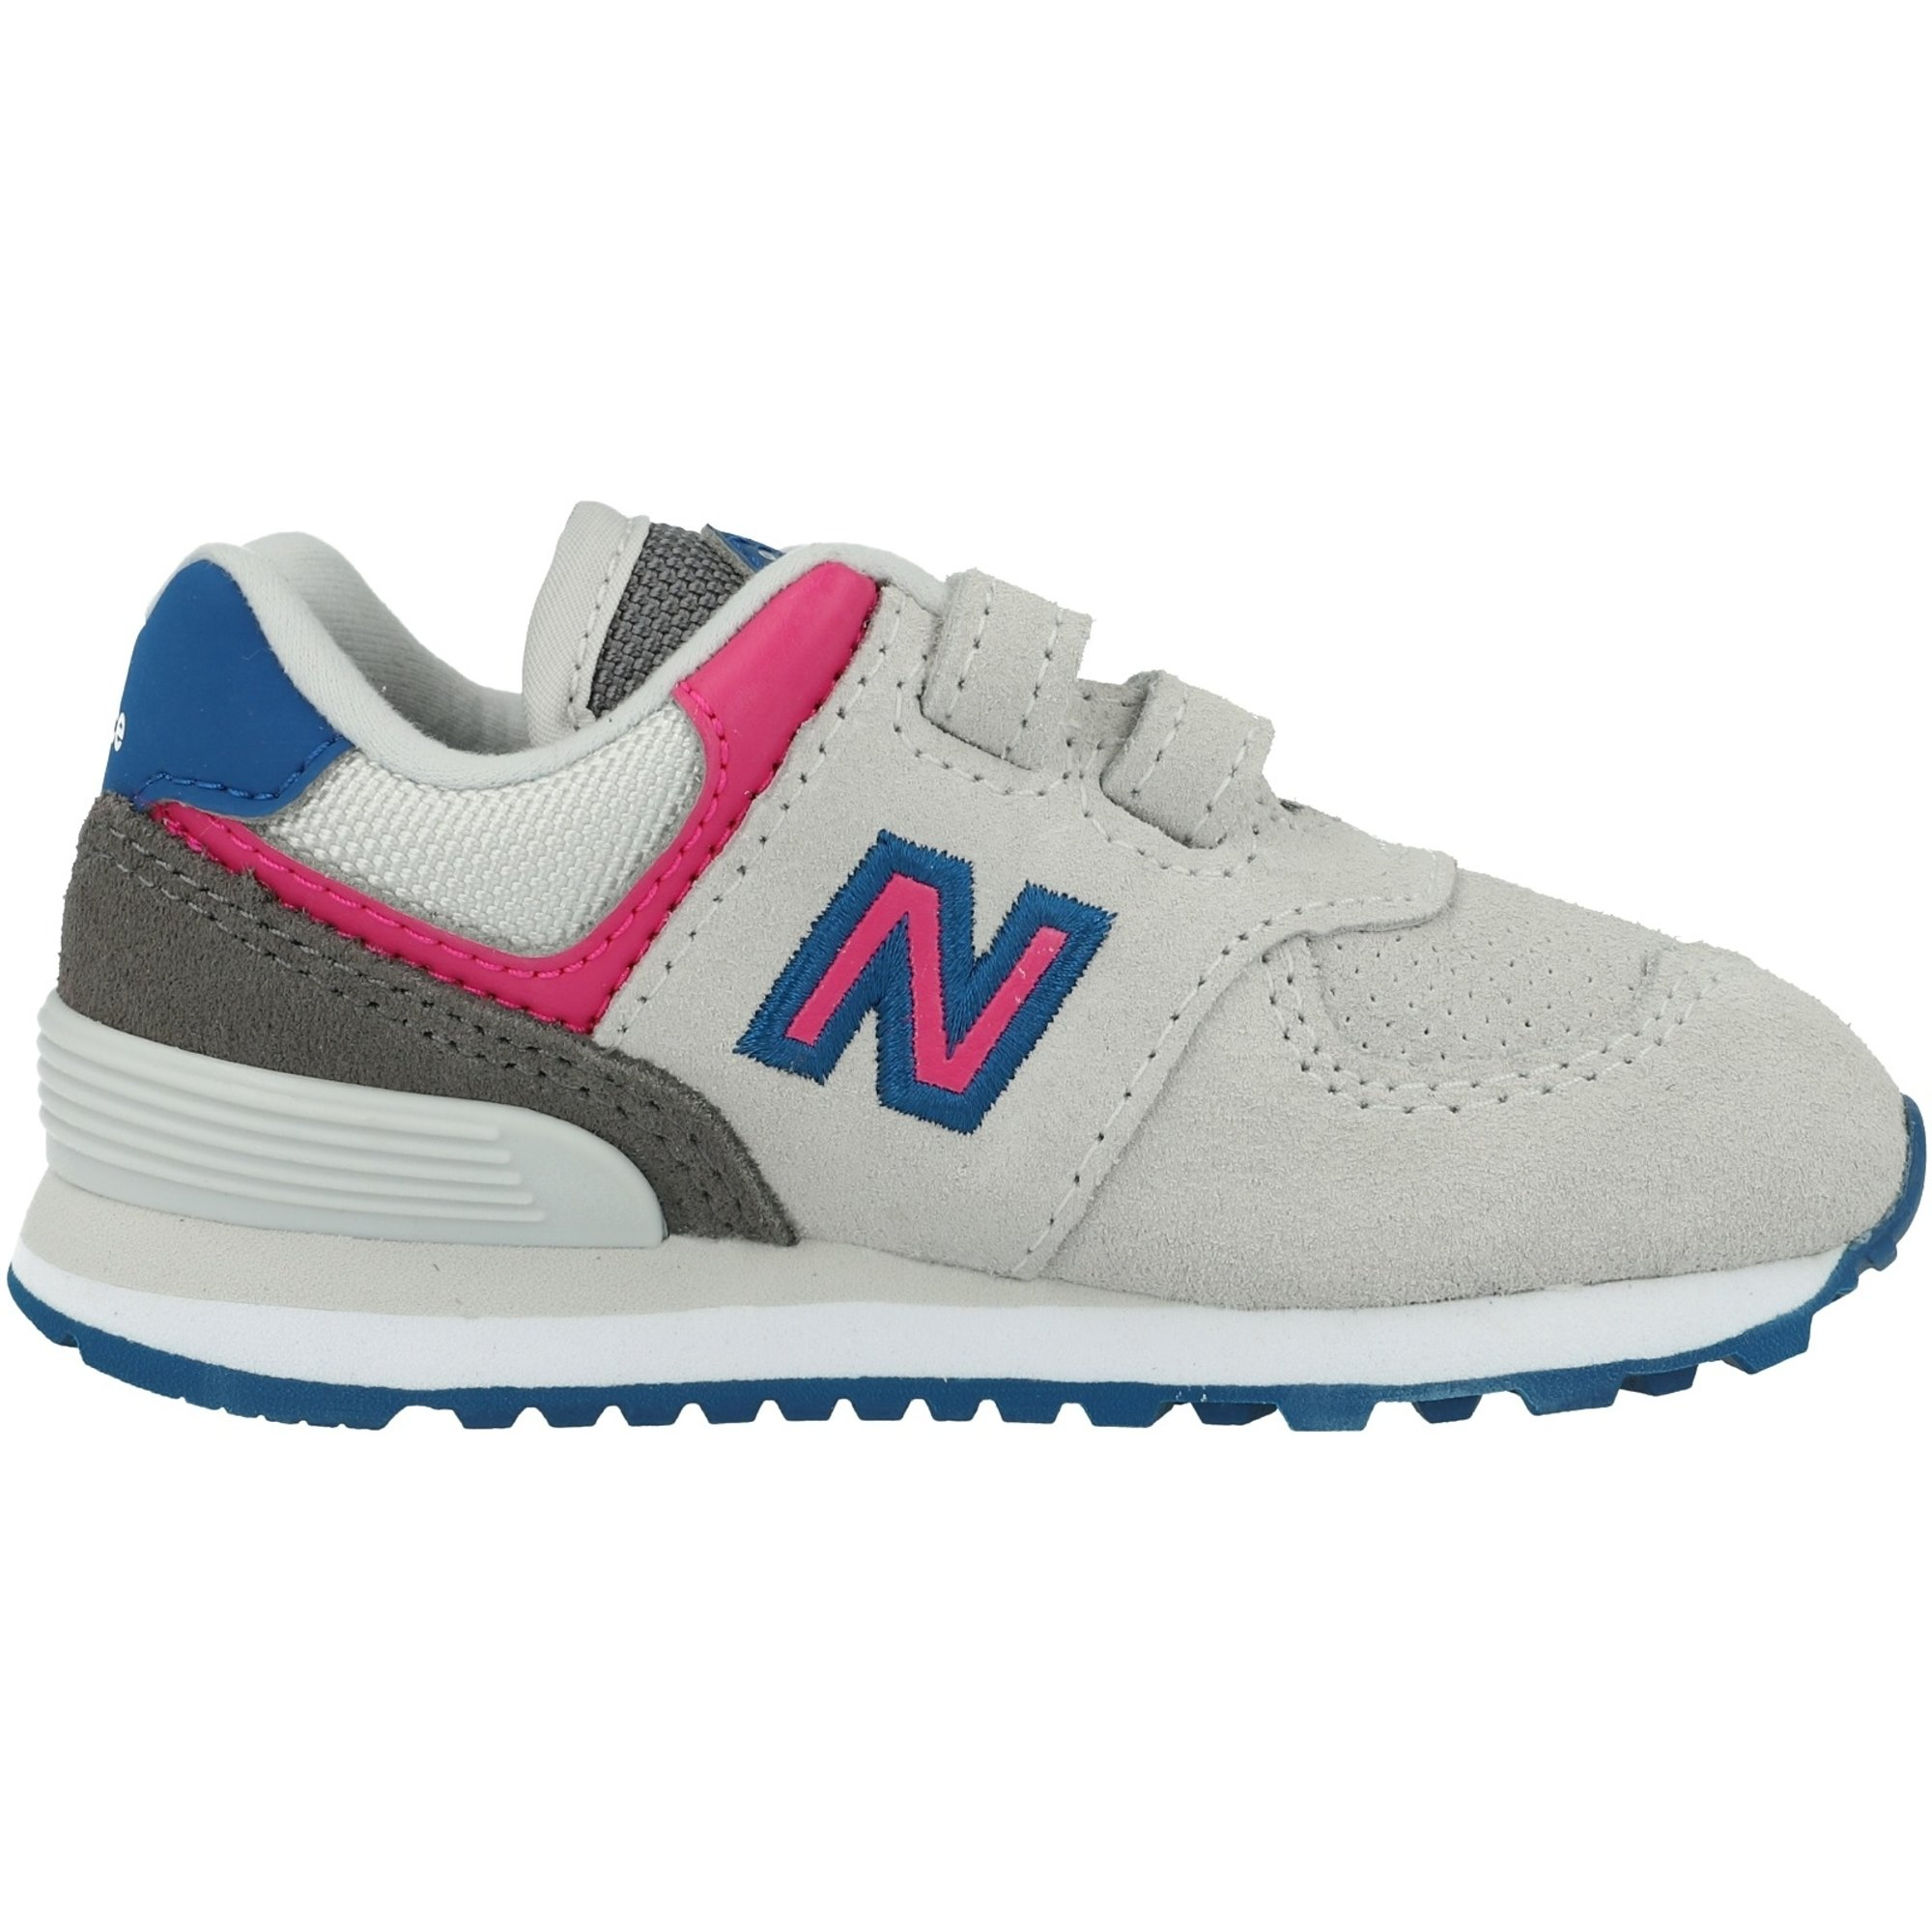 New Balance 574 Summer Fog//Carnival Suede Infant Trainers Shoes